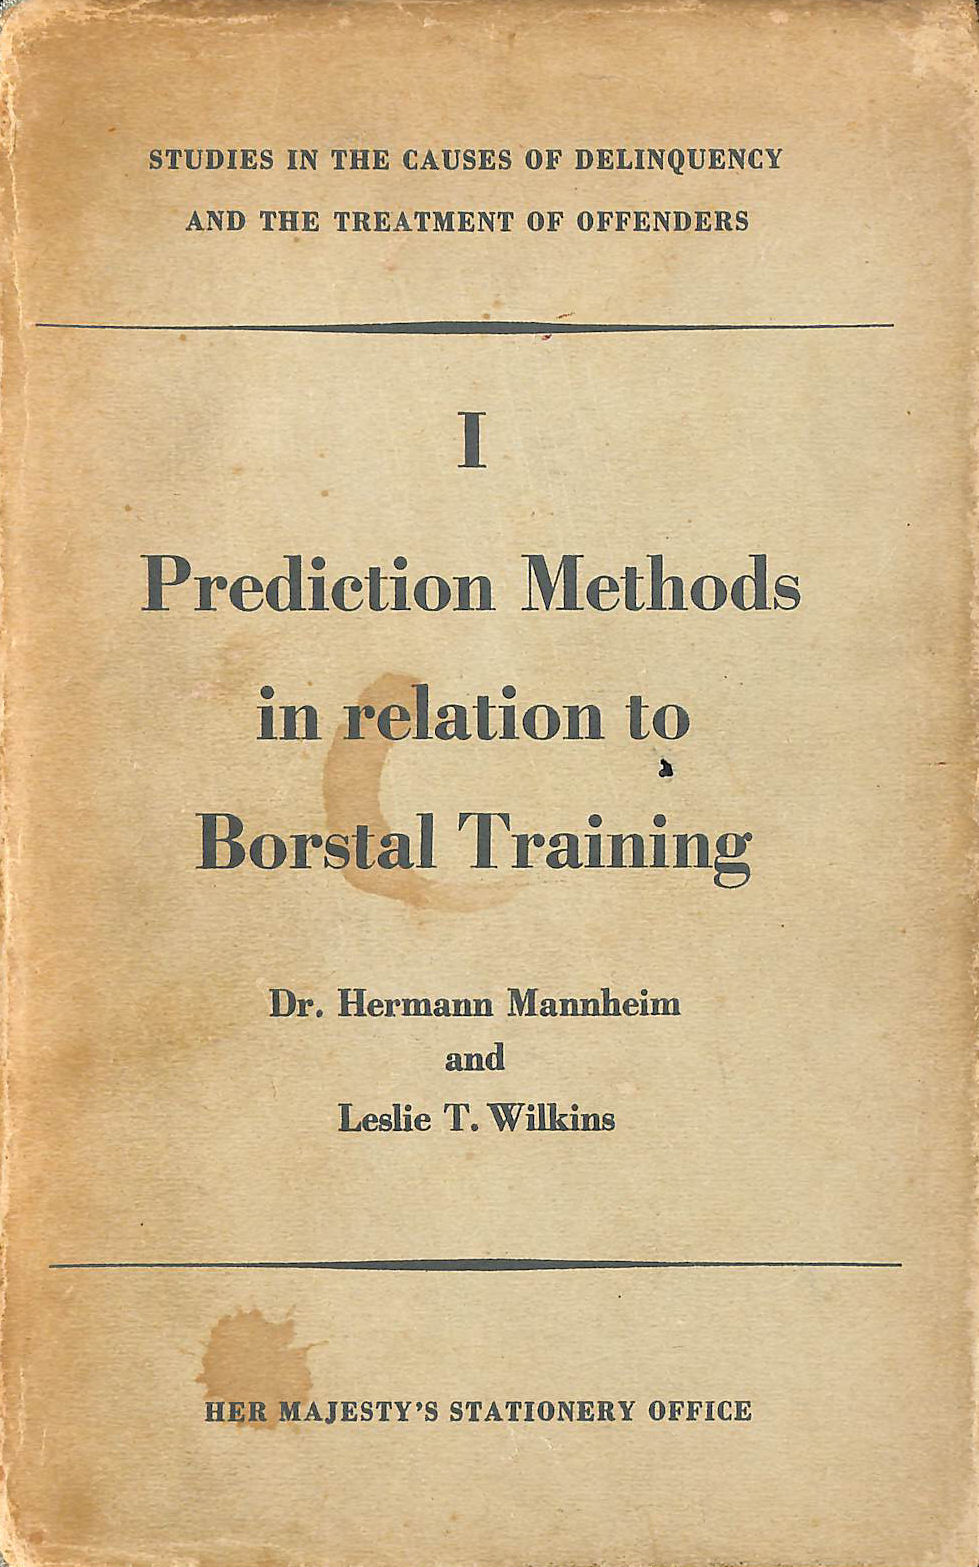 Image for Prediction Methods in Relation to Borstal Training: Studies in the Causes of Delinquency and the Treatment of Offenders I